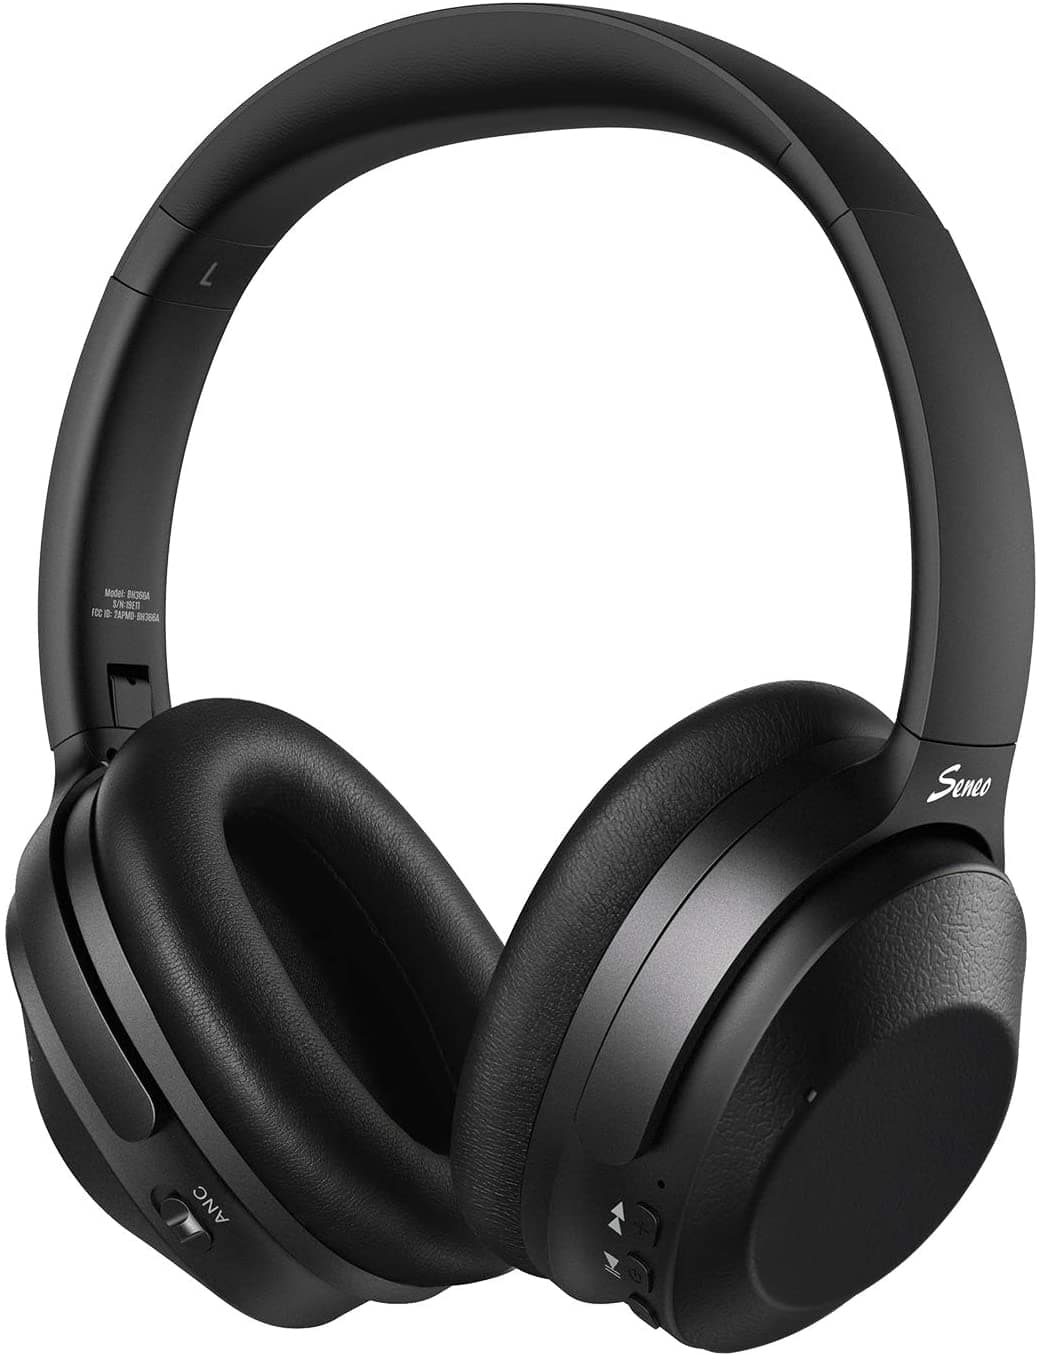 Seneo H12 Hybrid Active Noise Cancelling  Wireless Headphones for $16.45 + FS with Prime